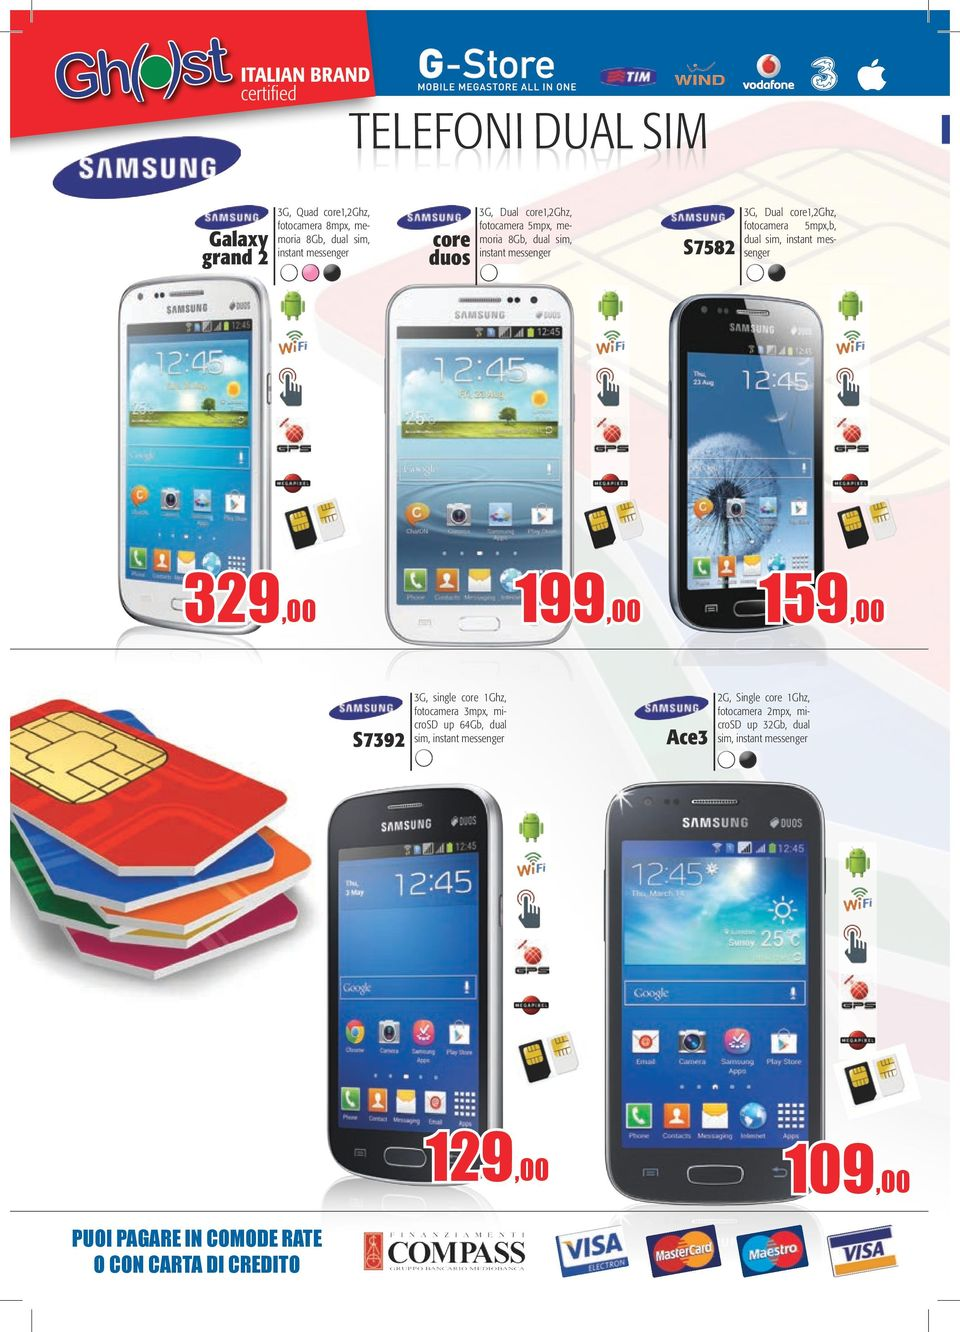 199,00 159,00 S7392 3G, single core 1Ghz, fotocamera 3mpx, microsd up 64Gb, dual sim, instant messenger Ace3 2G, Single core 1Ghz, fotocamera 2mpx,